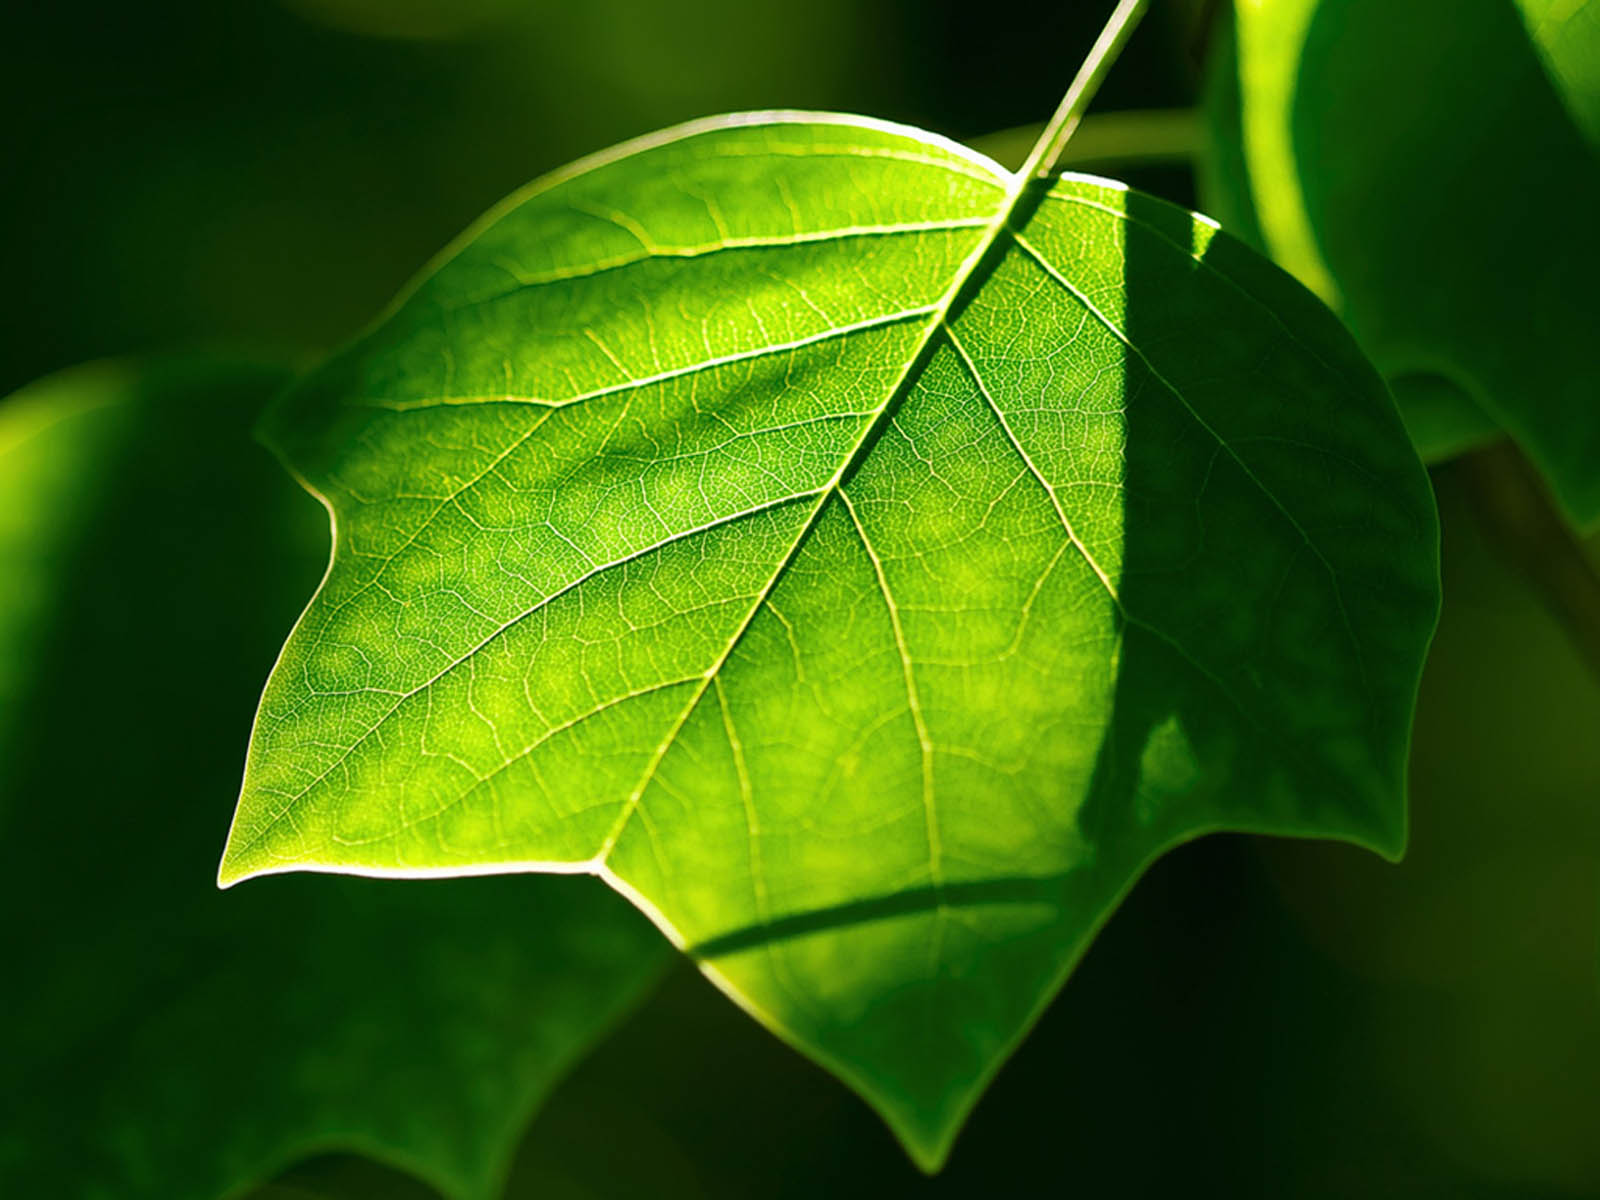 3d Live Wallpaper For Windows Xp Free Download Wallpapers Green Leaf Wallpapers